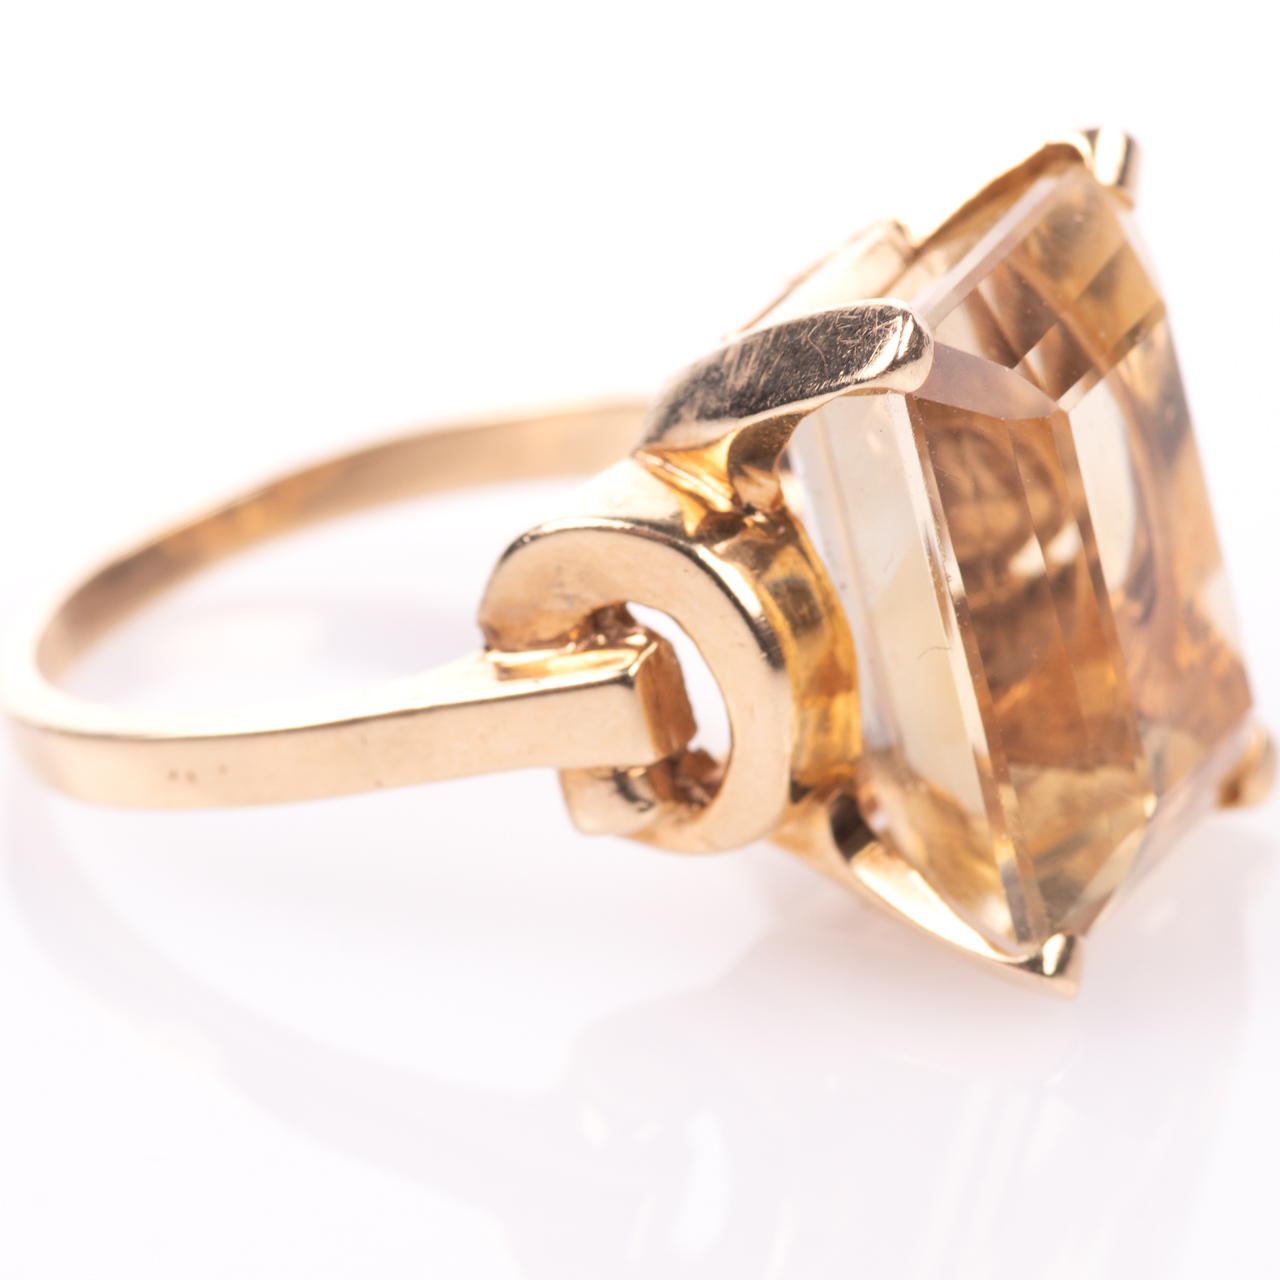 14ct Gold 15ct Citrine Ring - Image 7 of 7